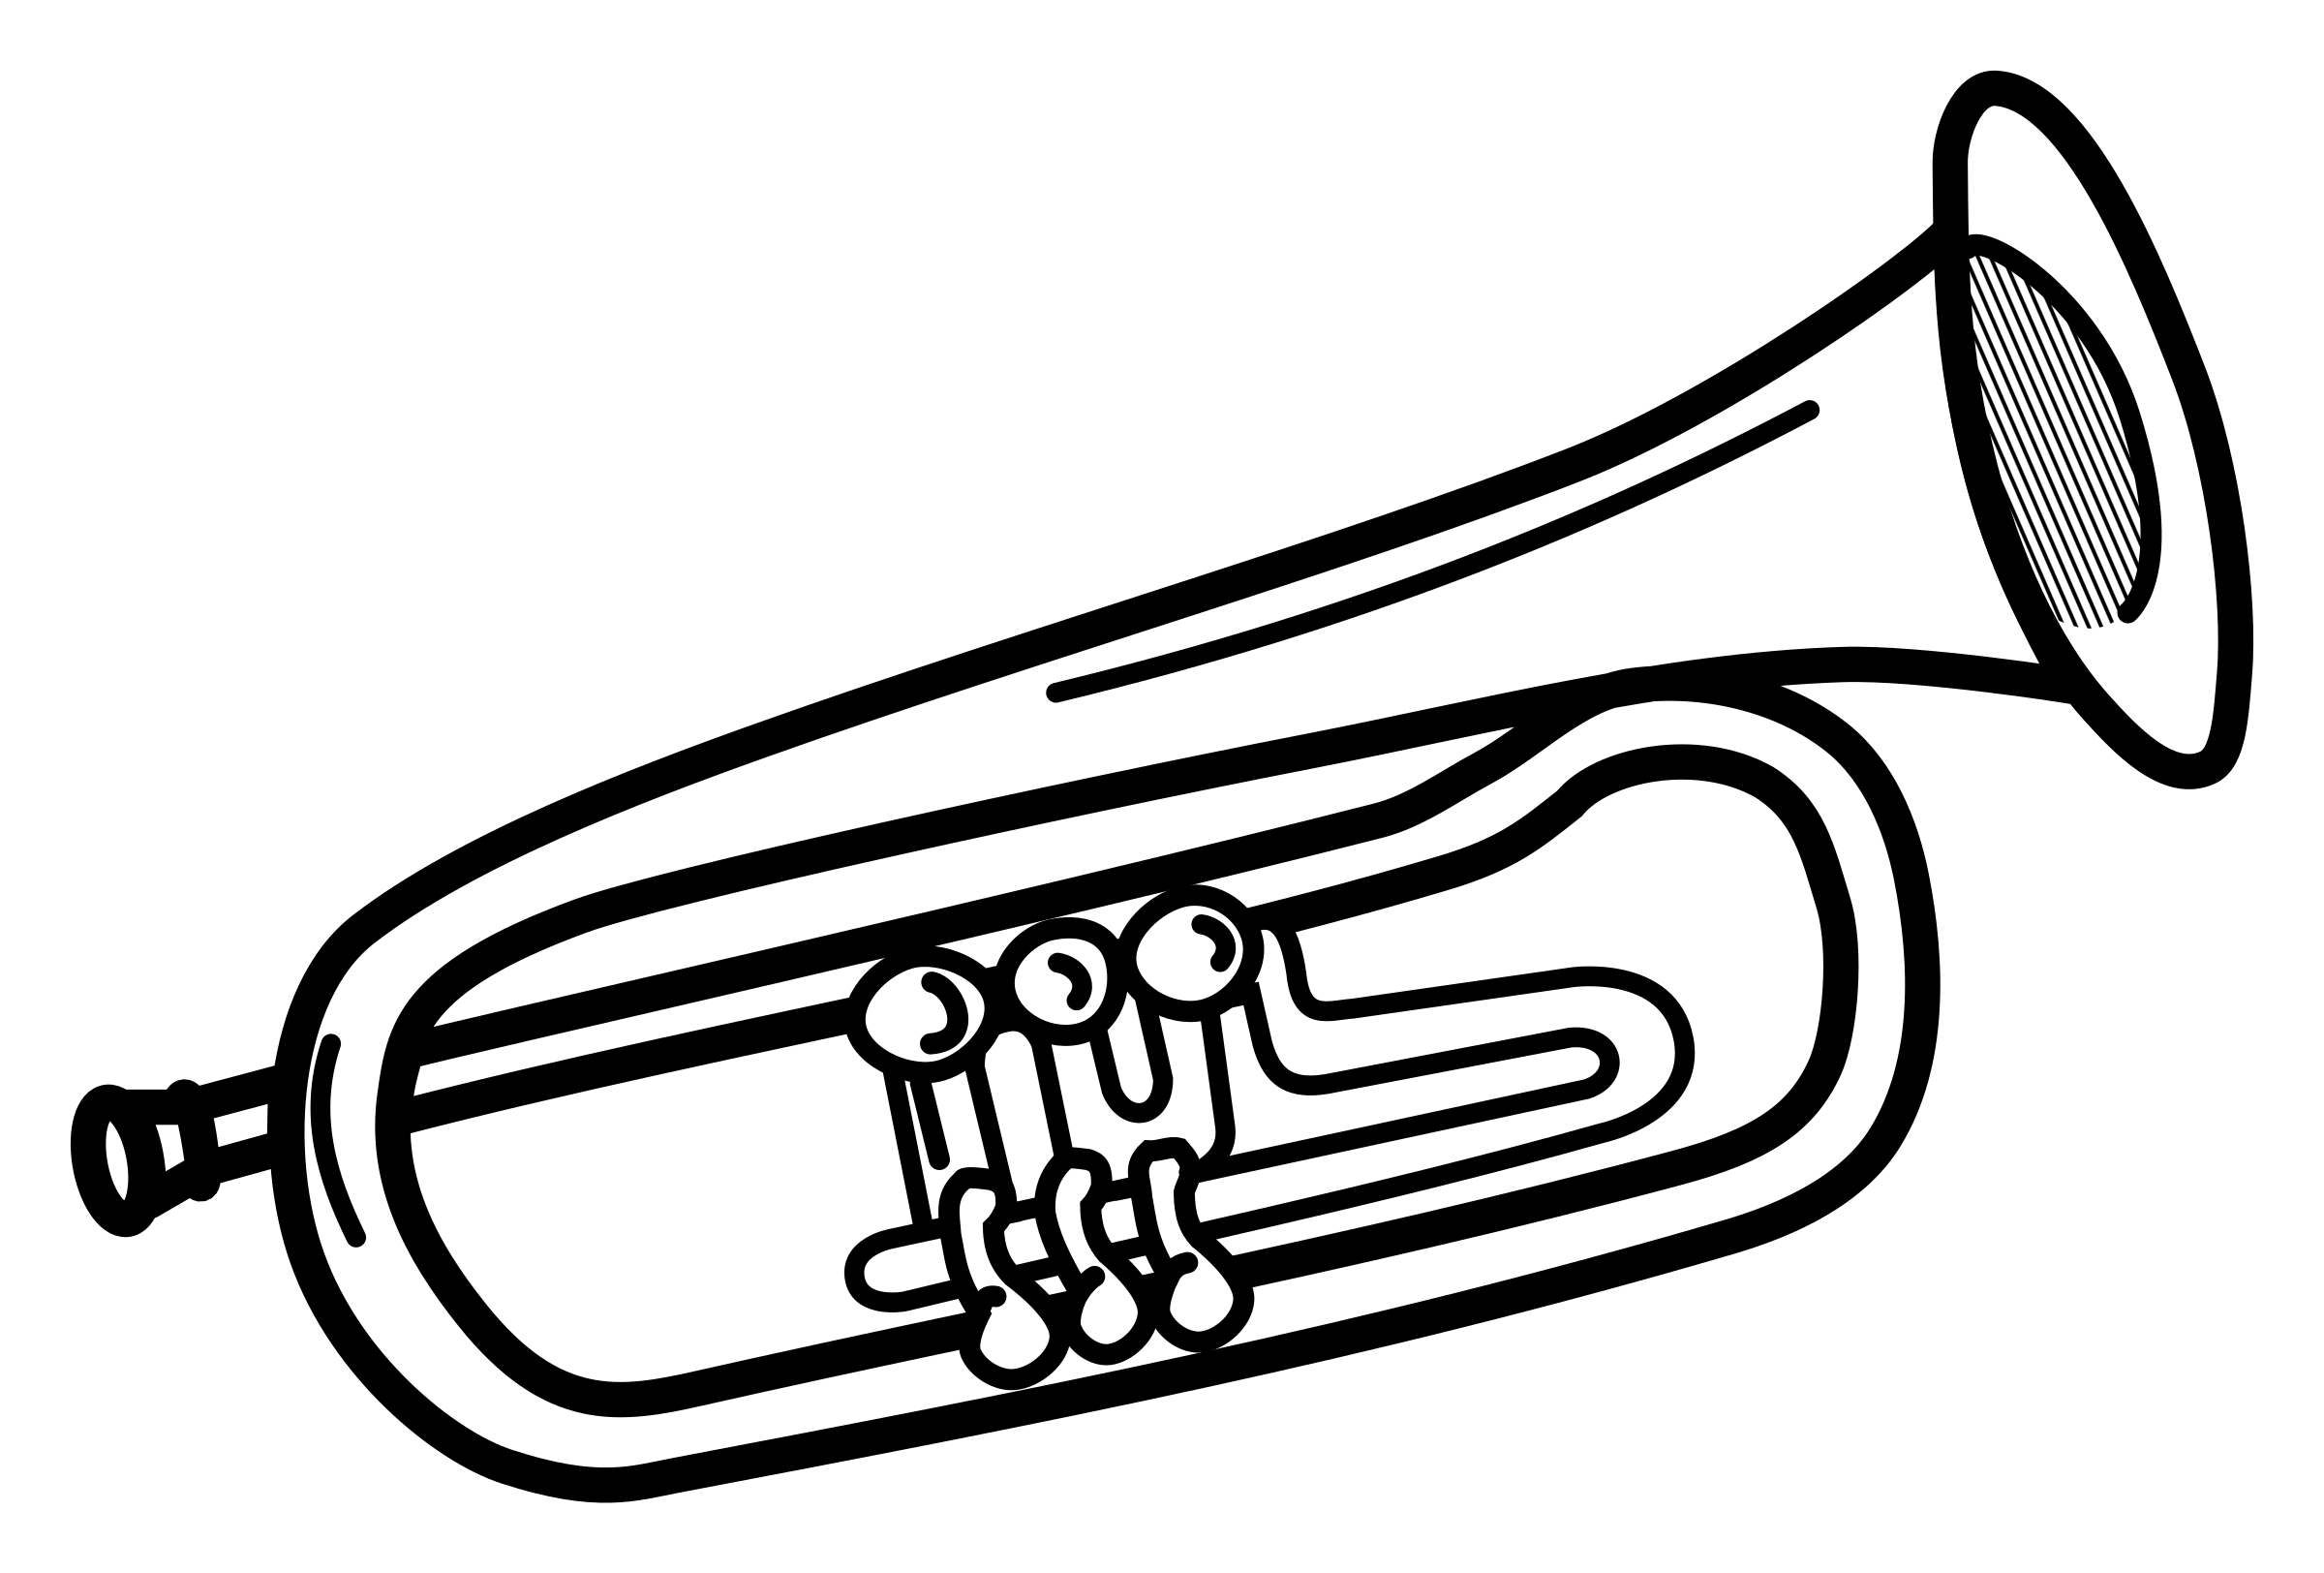 Trumpet clipart and others art inspiration 2 image